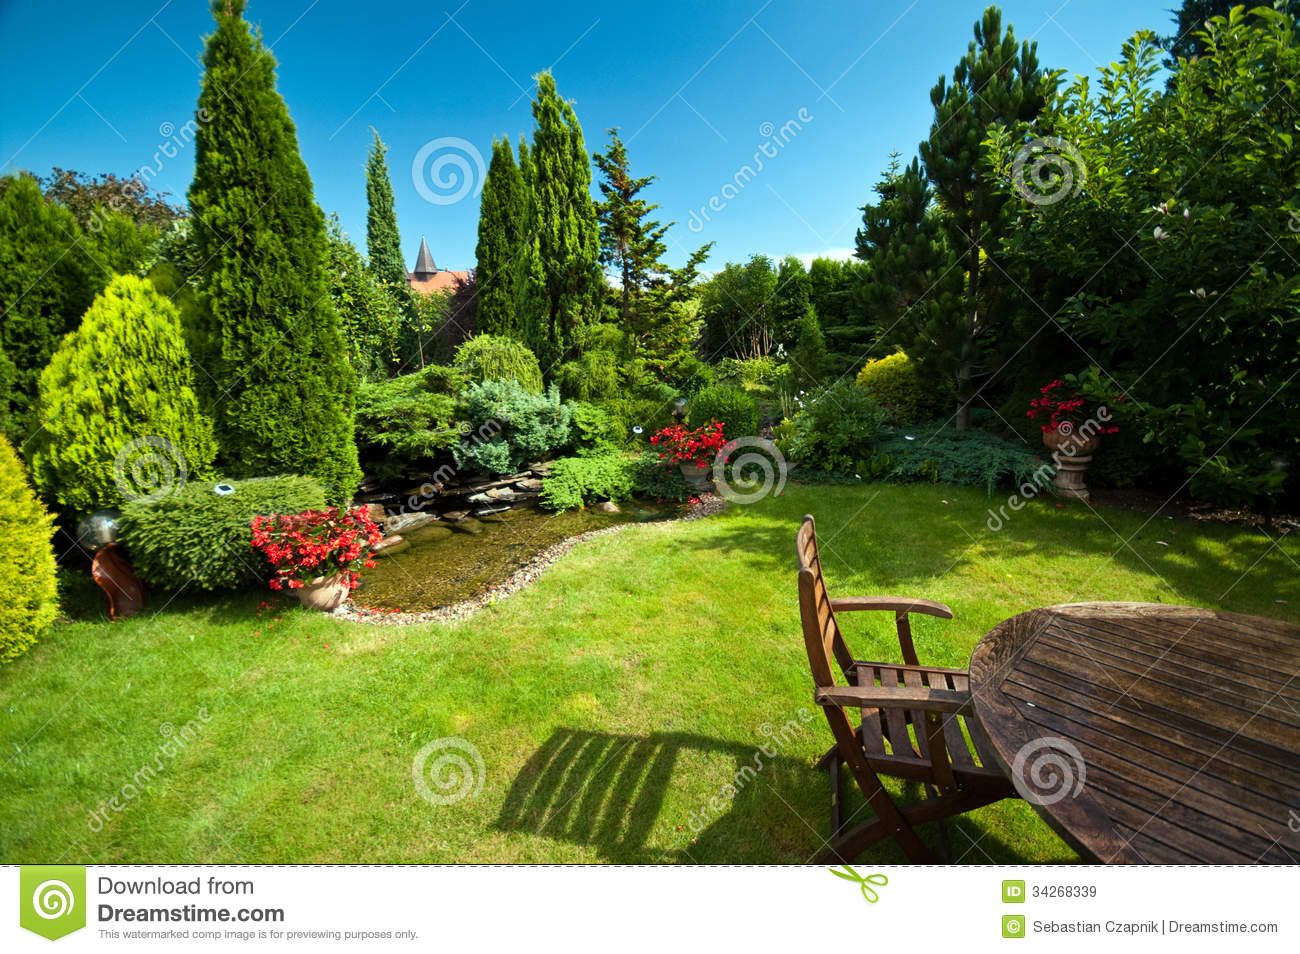 Landscaped Garden In Summer Stock Image Image Of Table